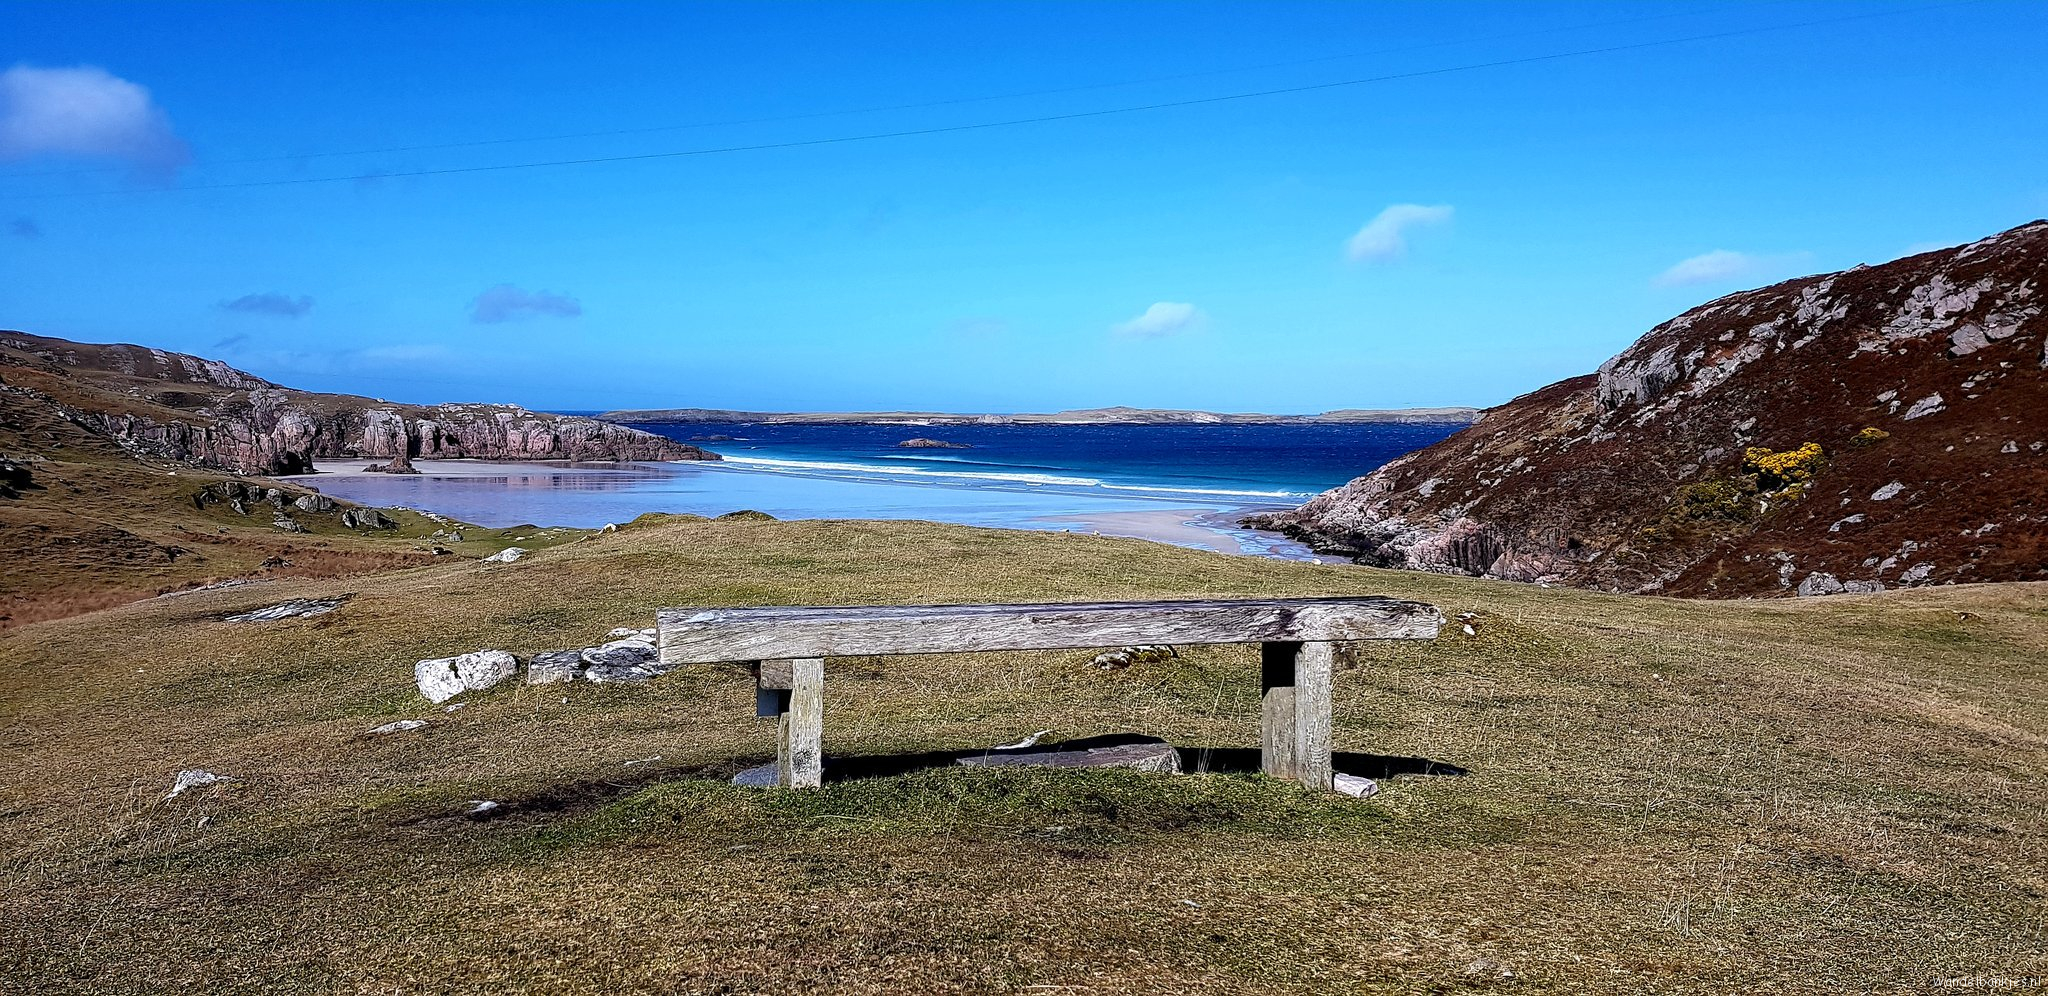 rt-hansterheijne-wat-een-fantastische-view-durness-scotlandwandelbankjes-walkersbenches-myfavebench-https-t-co-6ntdut9mkb